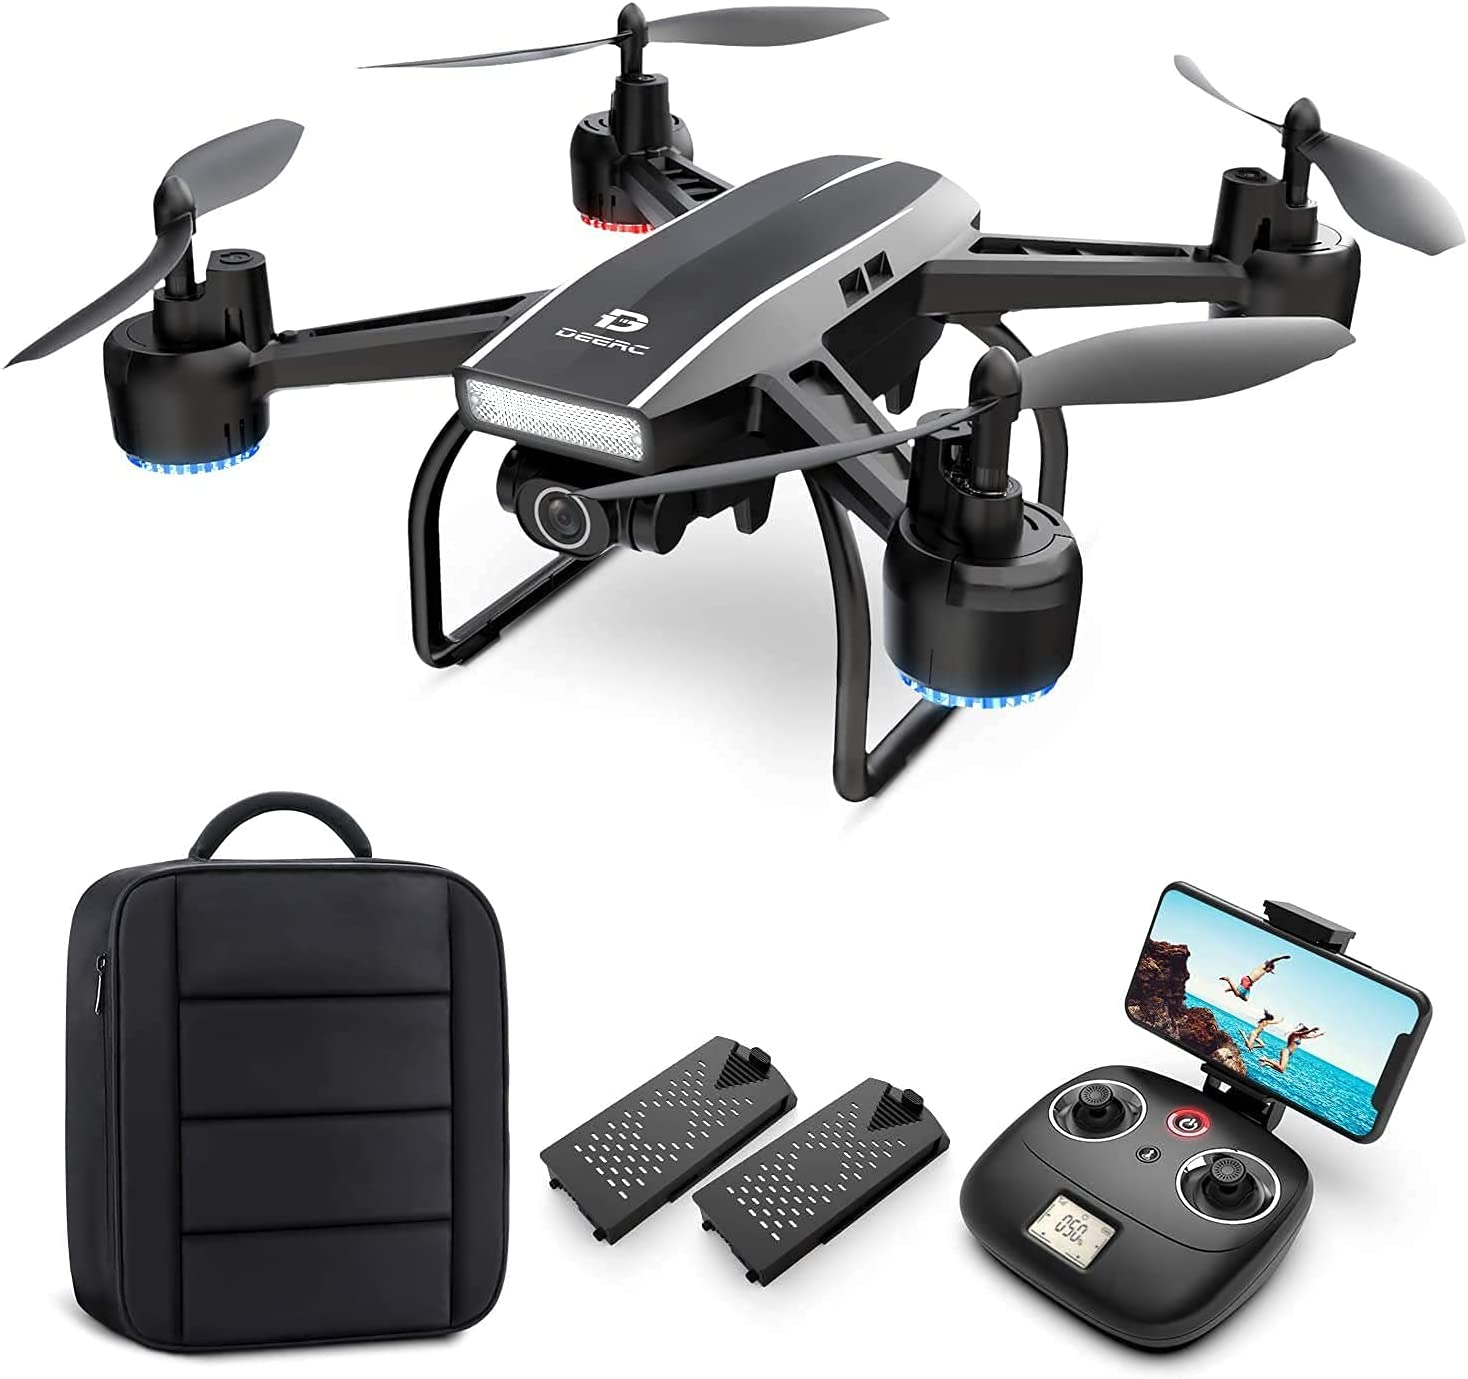 DEERC D50 Drone with Camera for Adults 2K Ultra HD FPV Live...